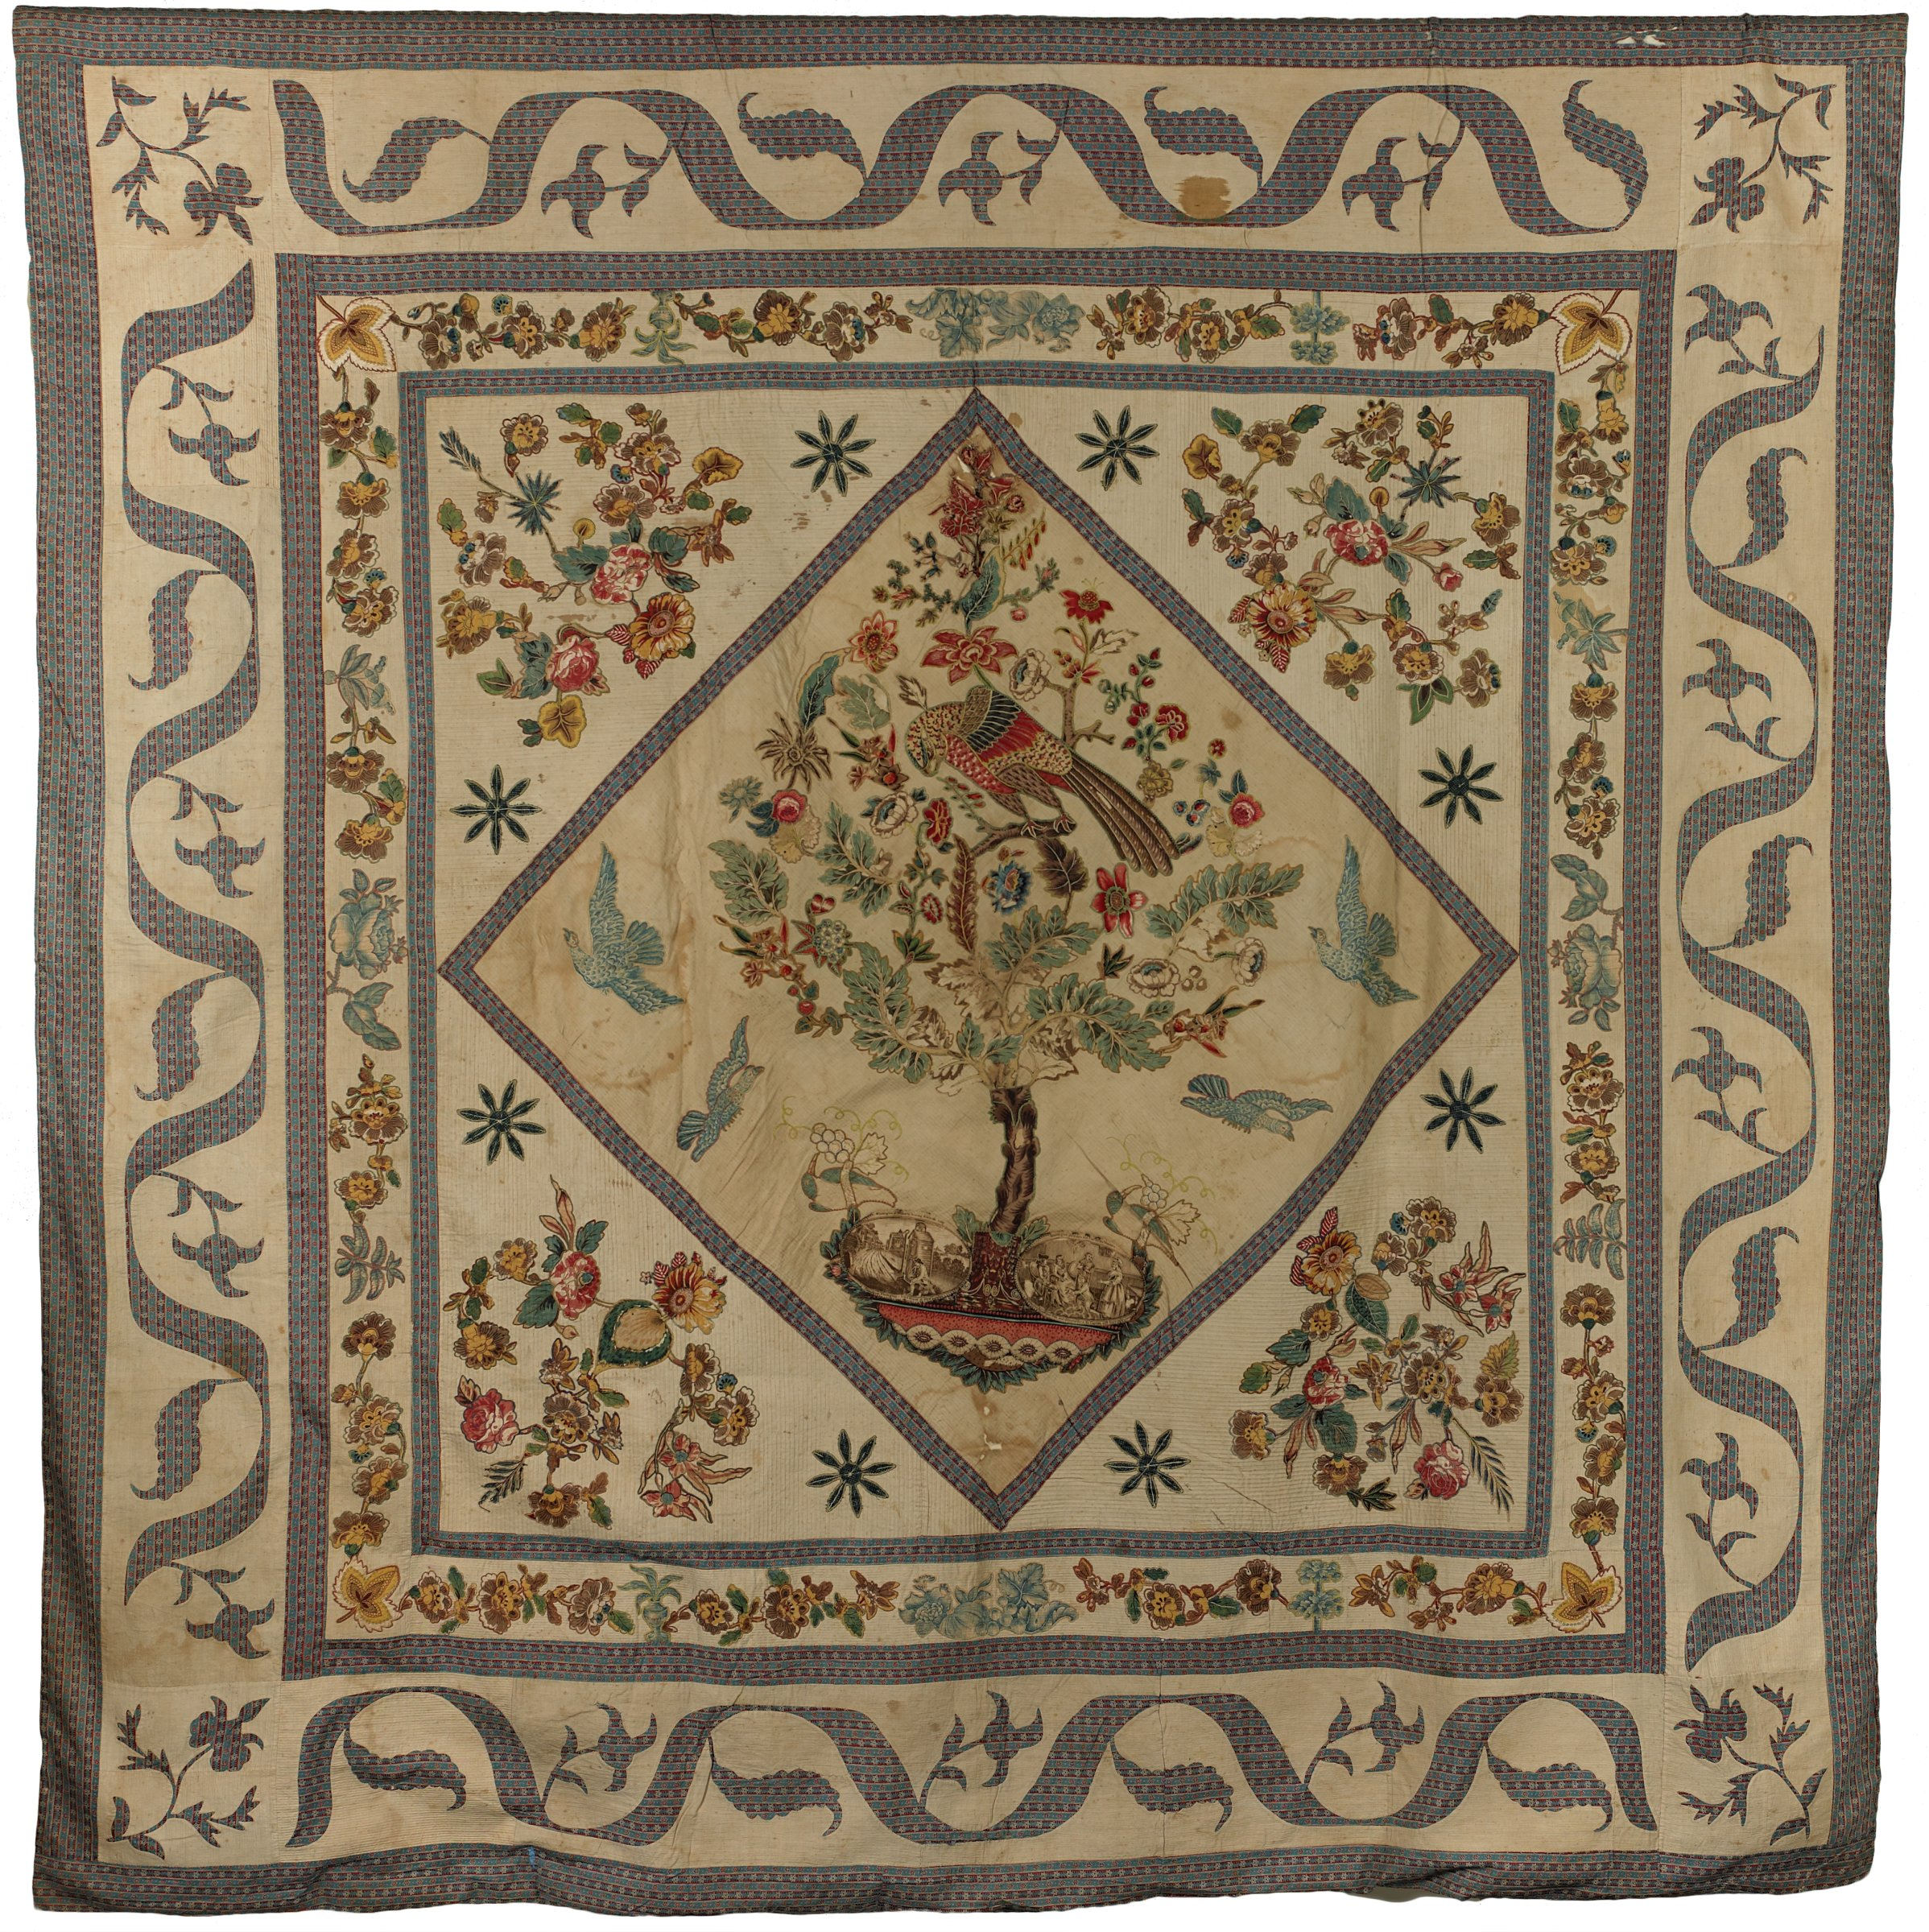 """Large bedcovering, or quilt top, of English cotton chintzes and stripes, and copperplate printed fabrics, with dozens of individual leaves, flowers and birds fastened with buttonhole stitches to a white ground in an applique method known as """"broderie perse,"""" the main design forms the Tree of Life pattern with an oversized parrot perched on a limb at the top of the tree, the trunk springs from a bowl containing two ovals of copperplate-printed fabric with the inscription on one reading, """"Whittingdon at Holloway hearing bowbells ring,"""" and """"Turn down Whittingdon, Lord Mayor of Great London,"""" and on the other, """"Whittingdon presents his cat a V--,"""" and """"Whittingdon brought Poor Puss and delivered her to the captain with tears in his eyes,"""" embroidered grape clusters are paired with long-beaked birds with appliqued heads and wings, four additional birds fly in the background, each corner of the central medallion is decorated with a different composition of flowers and leaves, the border appliqued of flowers and leaves between one single striped and one double striped border, the outermost border in reverse applique with scrolls, leaves and flowers, and finished with a final frame of four stripes."""